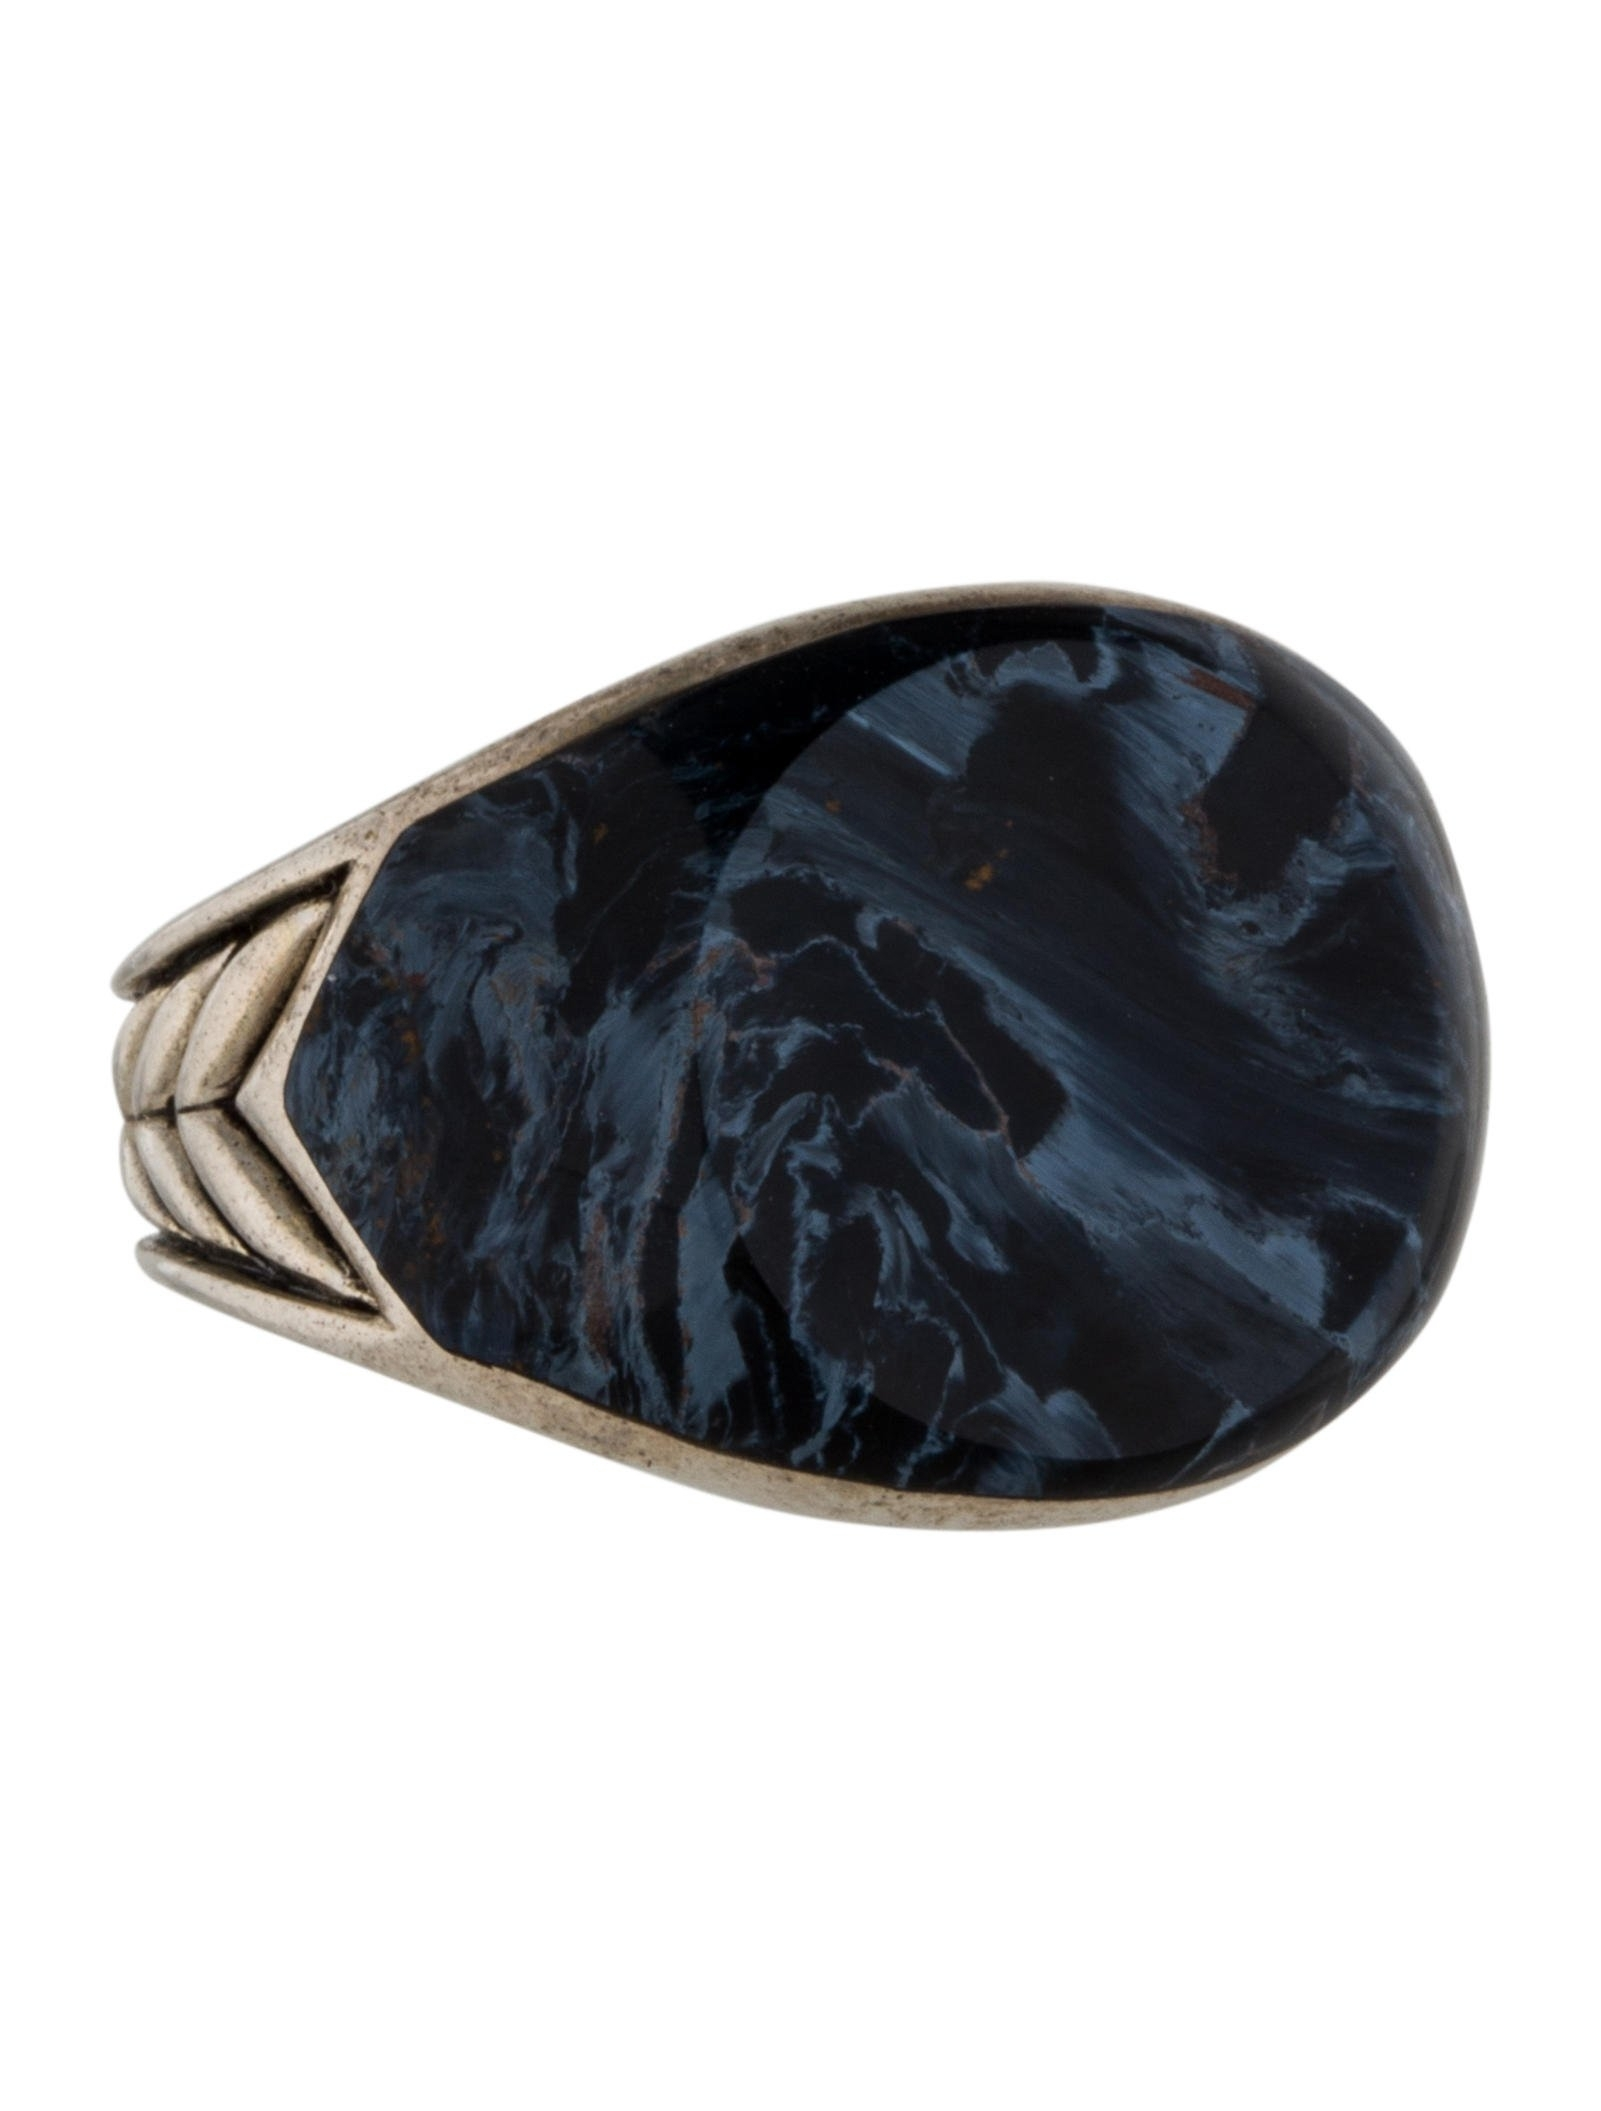 David Yurman Pietersite Chevron Signet Ring – Rings – Dvy32482 Intended For Most Current Chevron Signet Rings (Gallery 13 of 15)